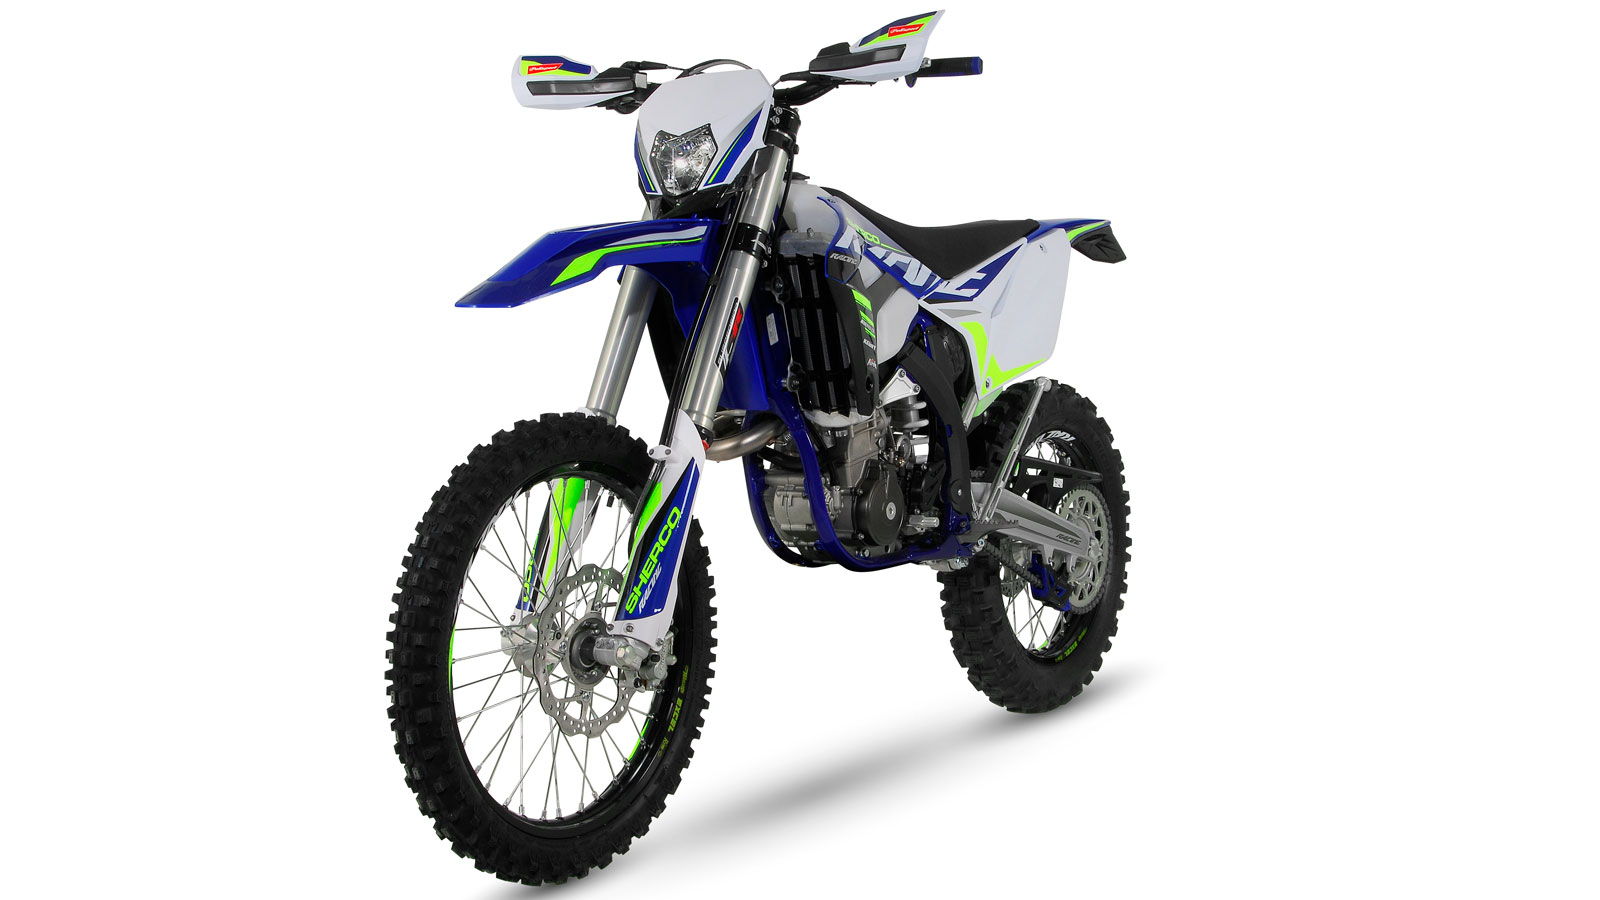 Test av Sherco 2020 enduro